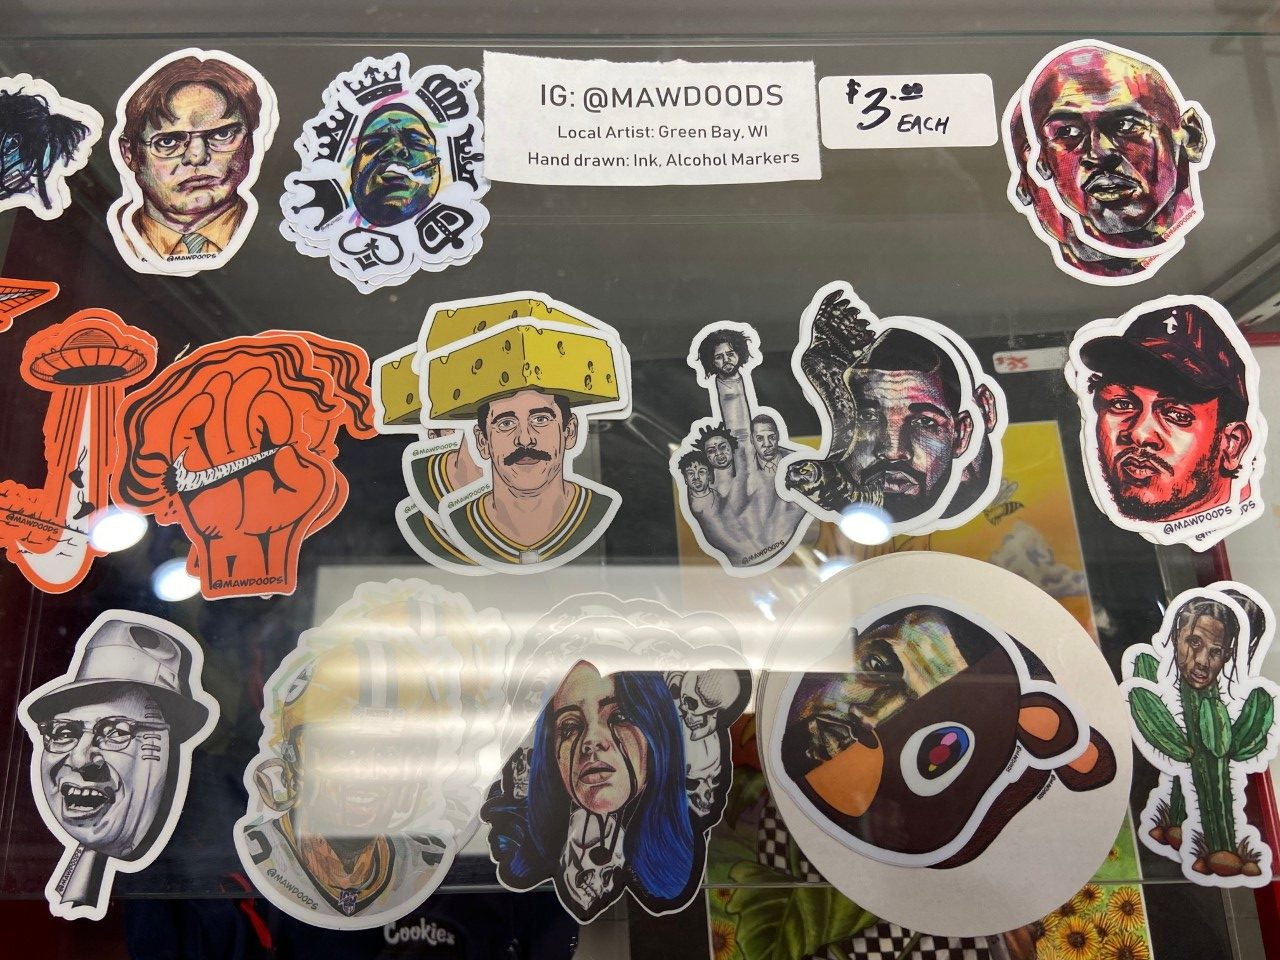 Awesome stickers from local artisits